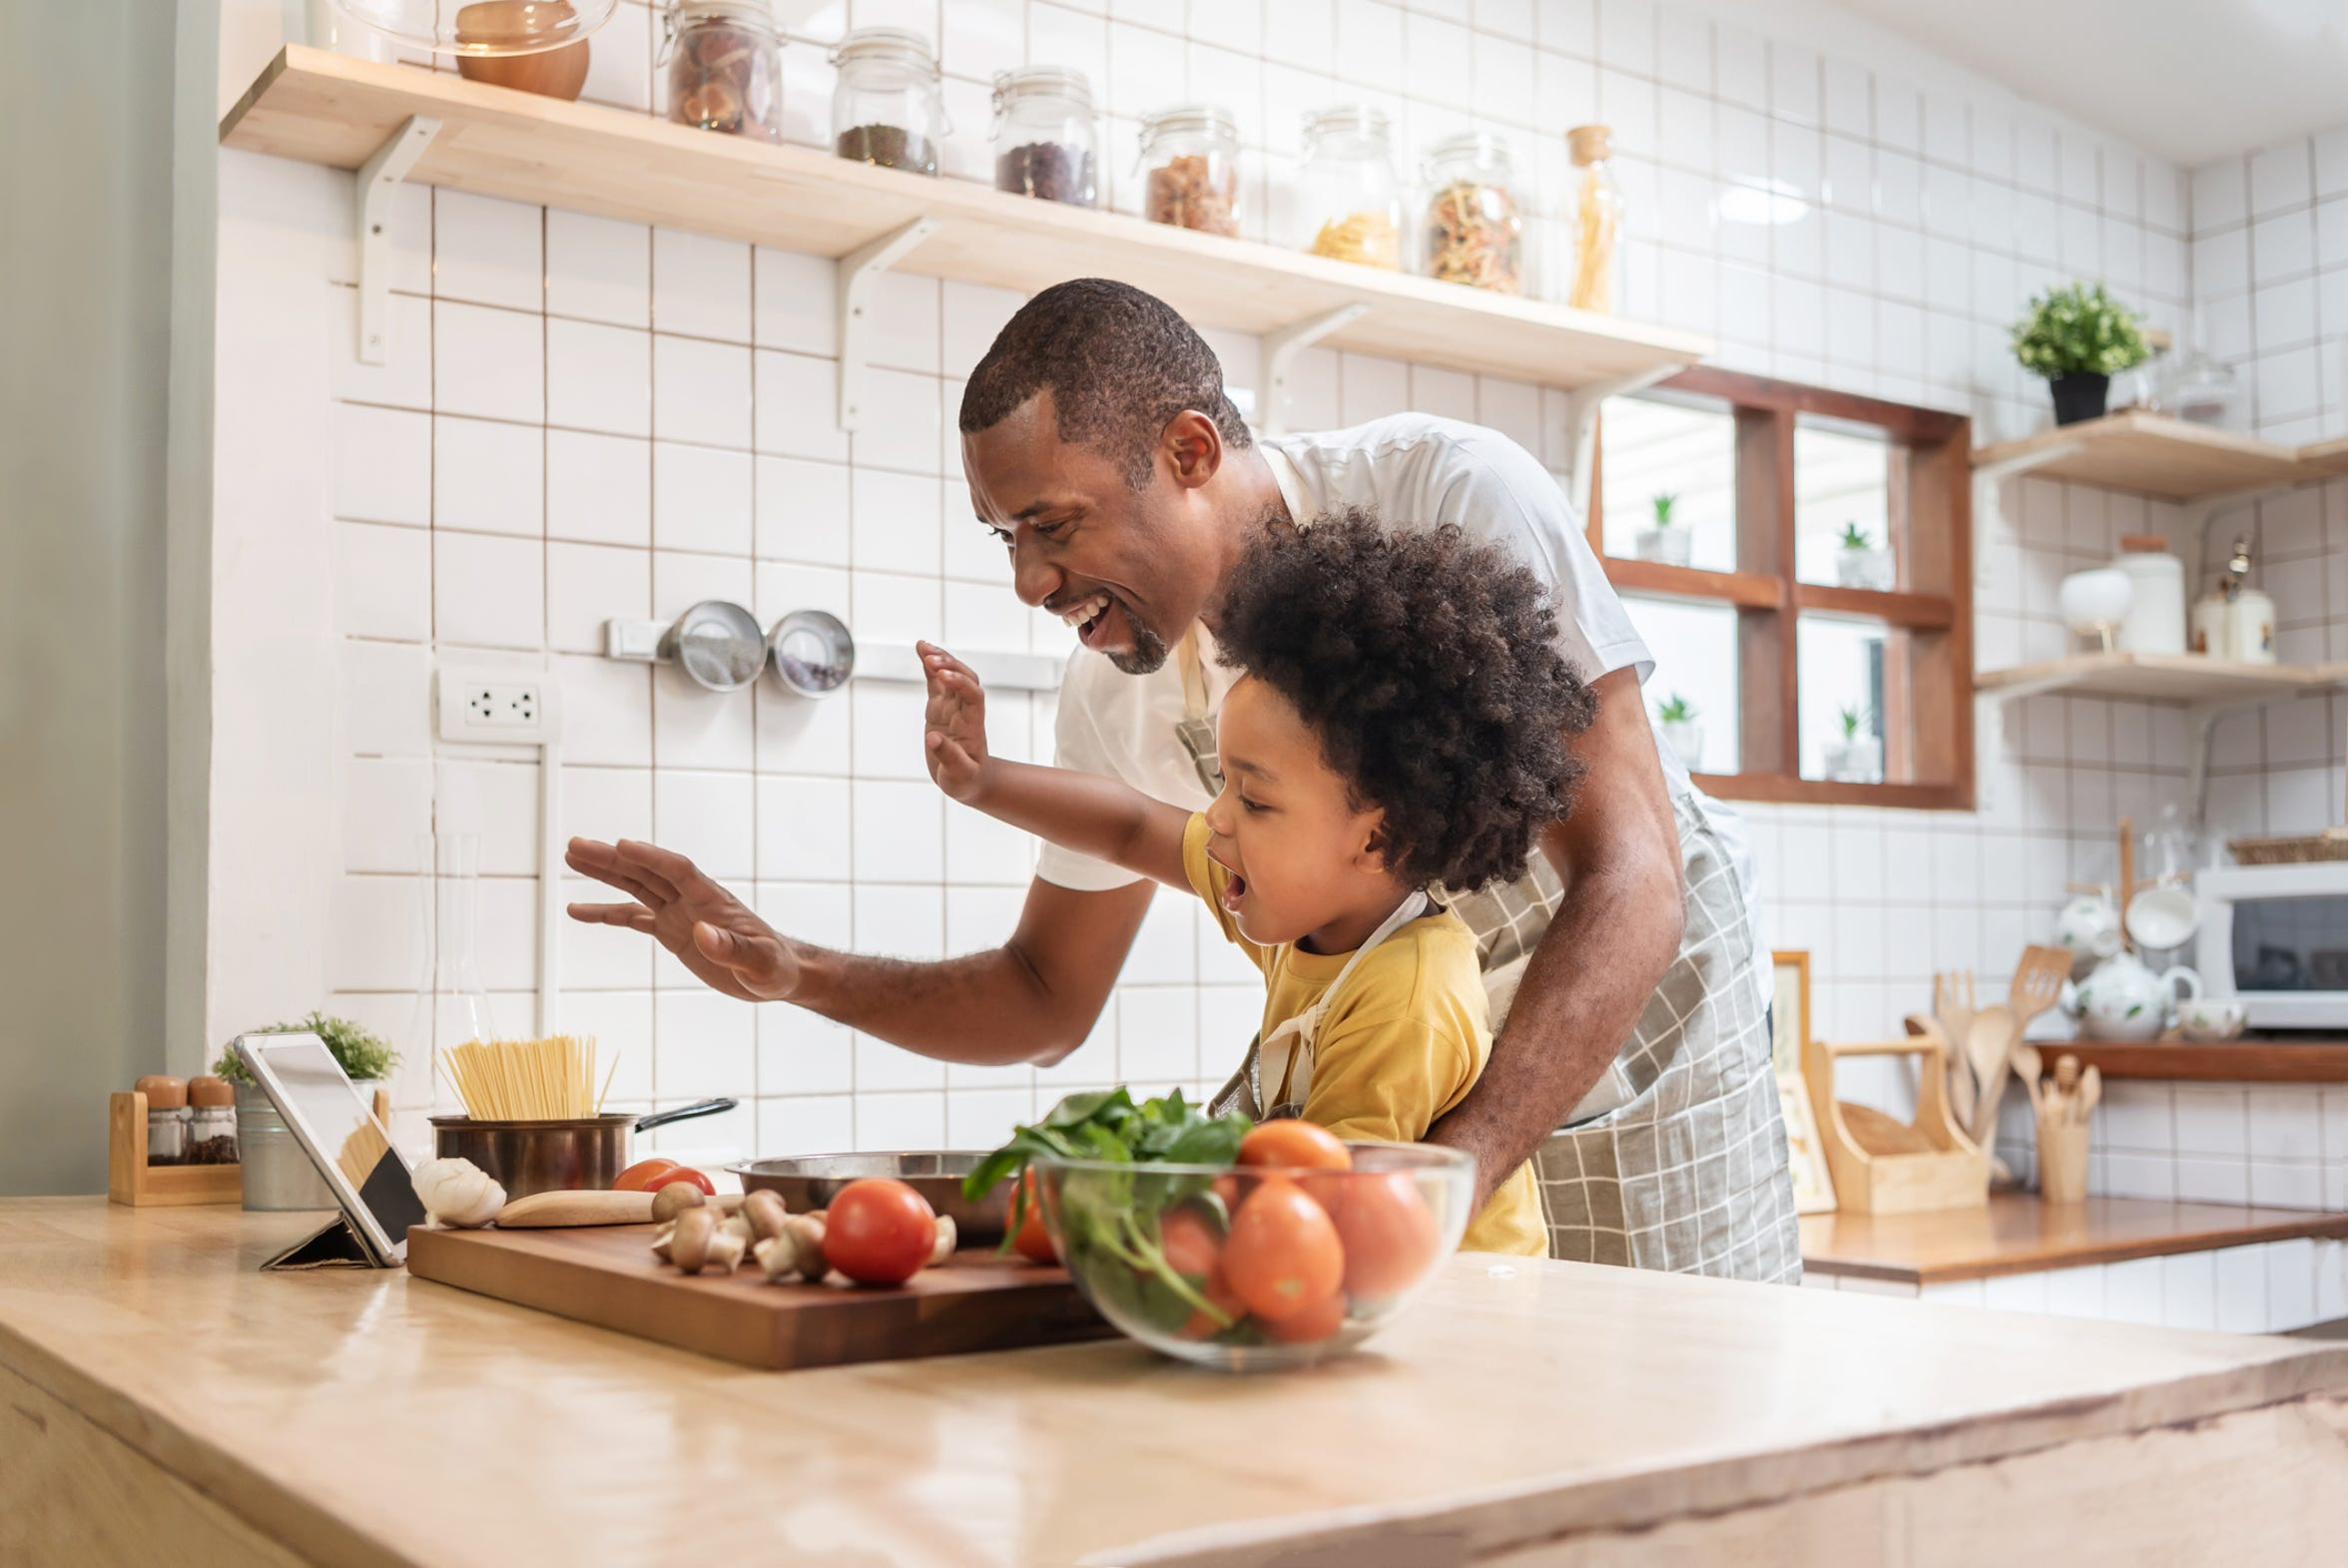 Making a few simple lifestyle changes today, like avoiding processed foods, can make a positive impact on a child's future.